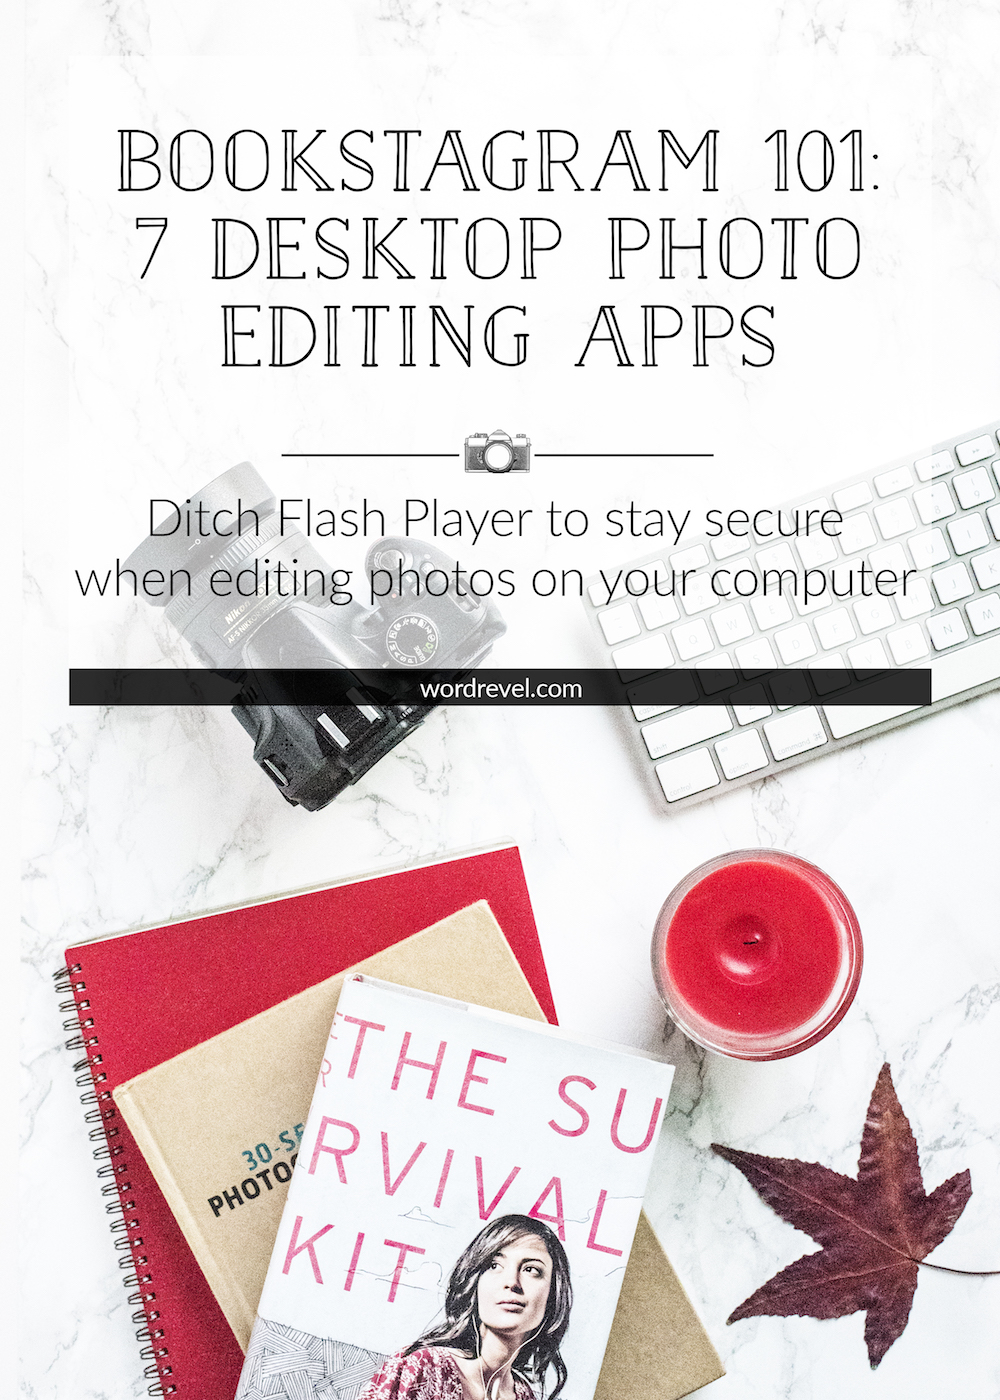 Bookstagram 101 - 7 Desktop Photo Editing Apps